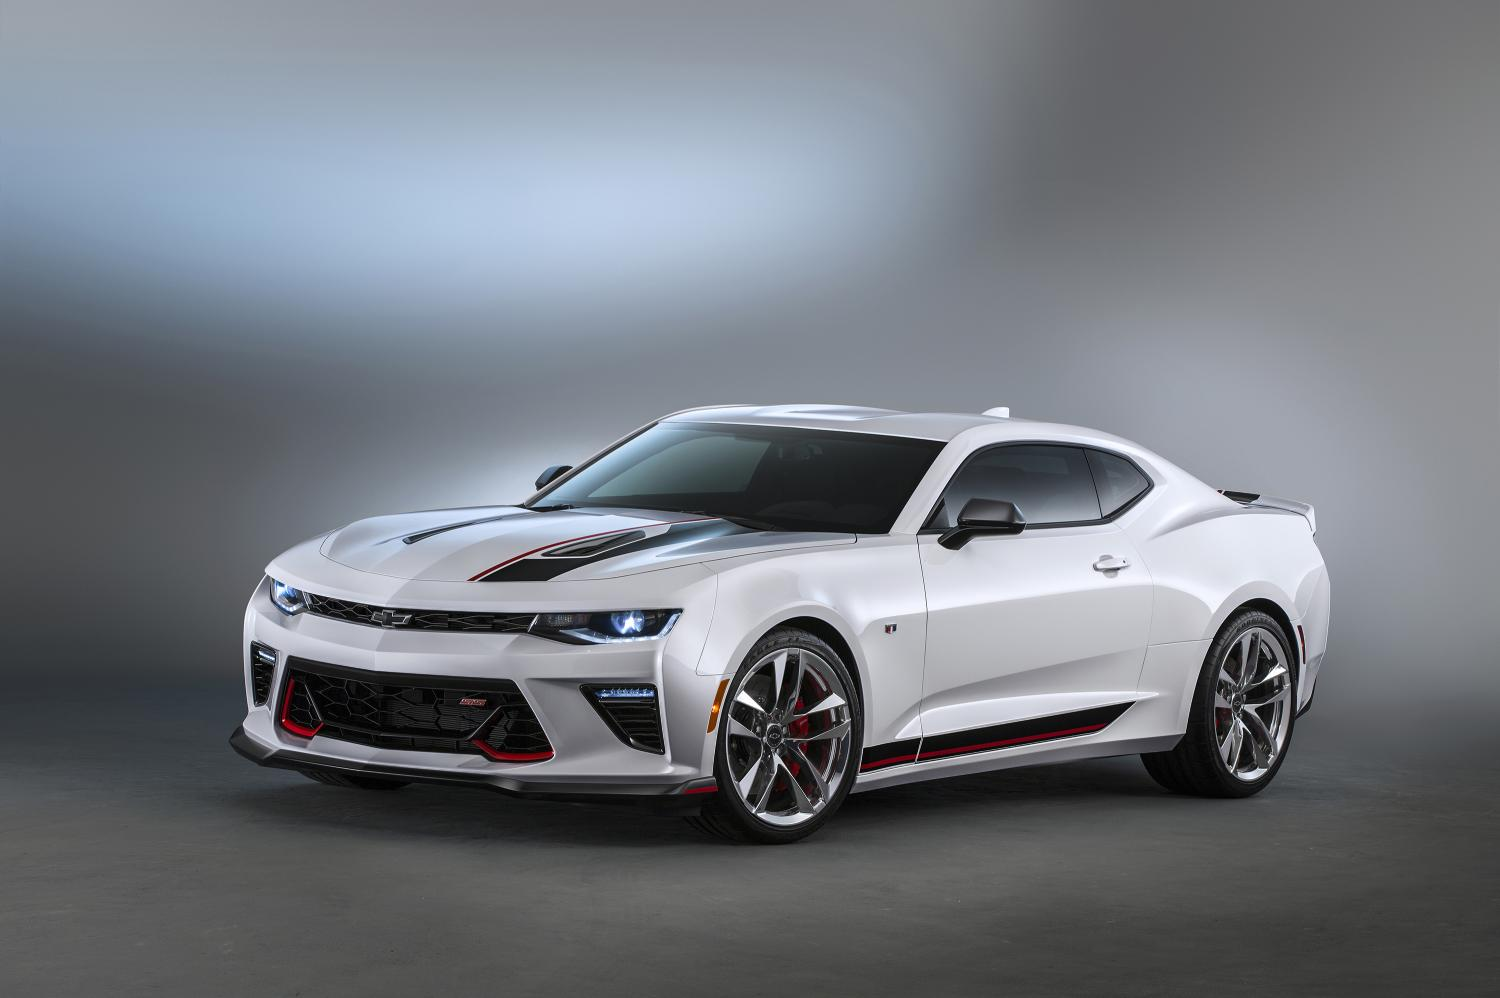 2016 Chevy Camaro Gets 4 Custom Concepts For 2017 Sema Show